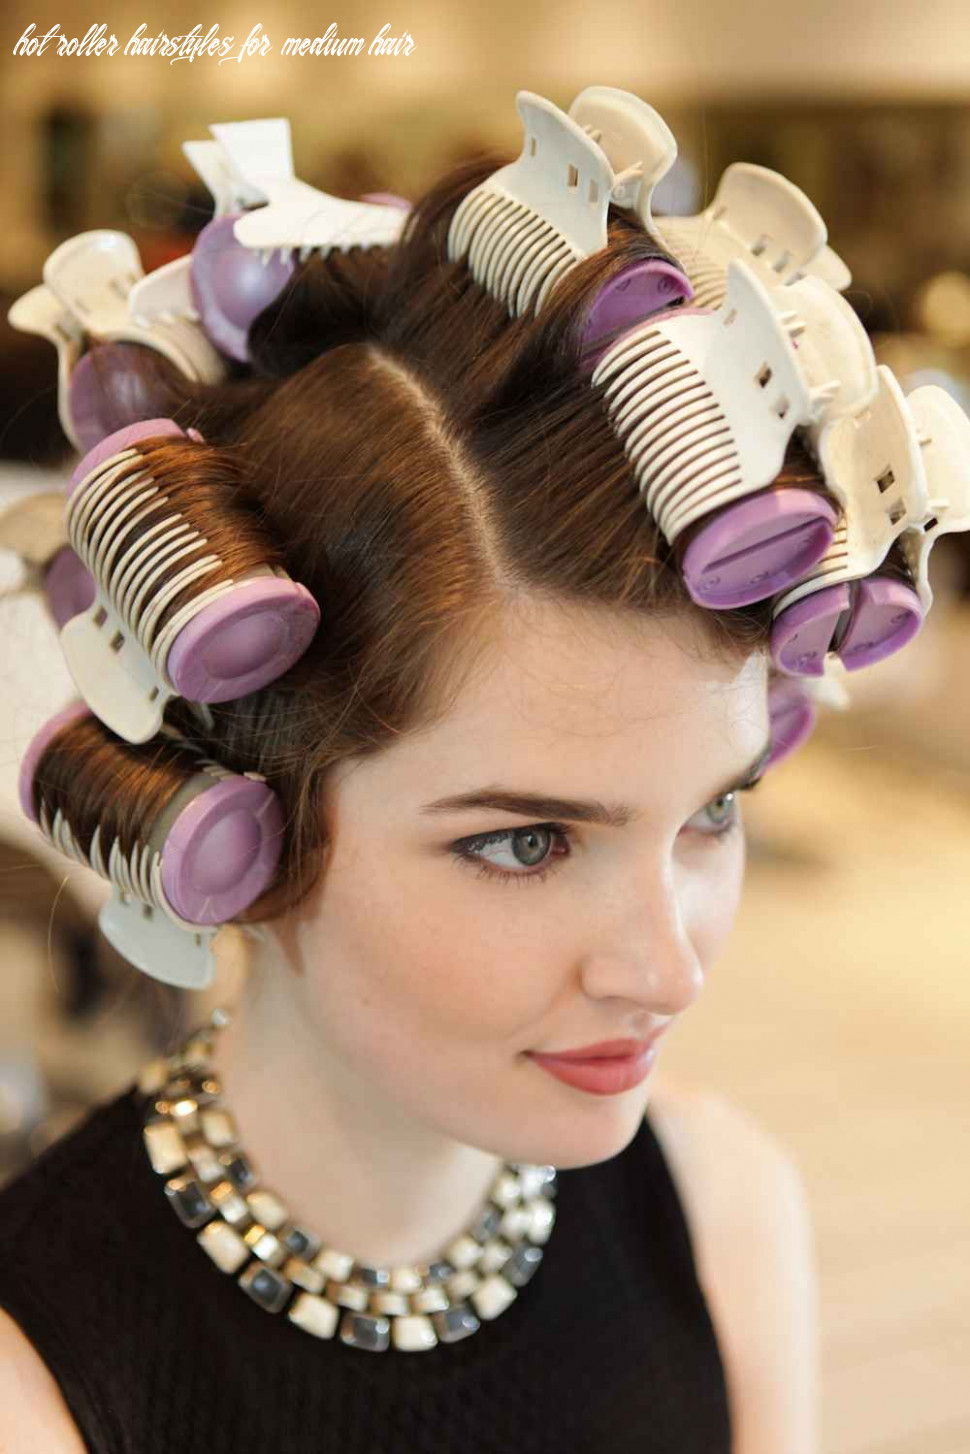 Styles created with hot rollers   hot rollers hair, hot rollers